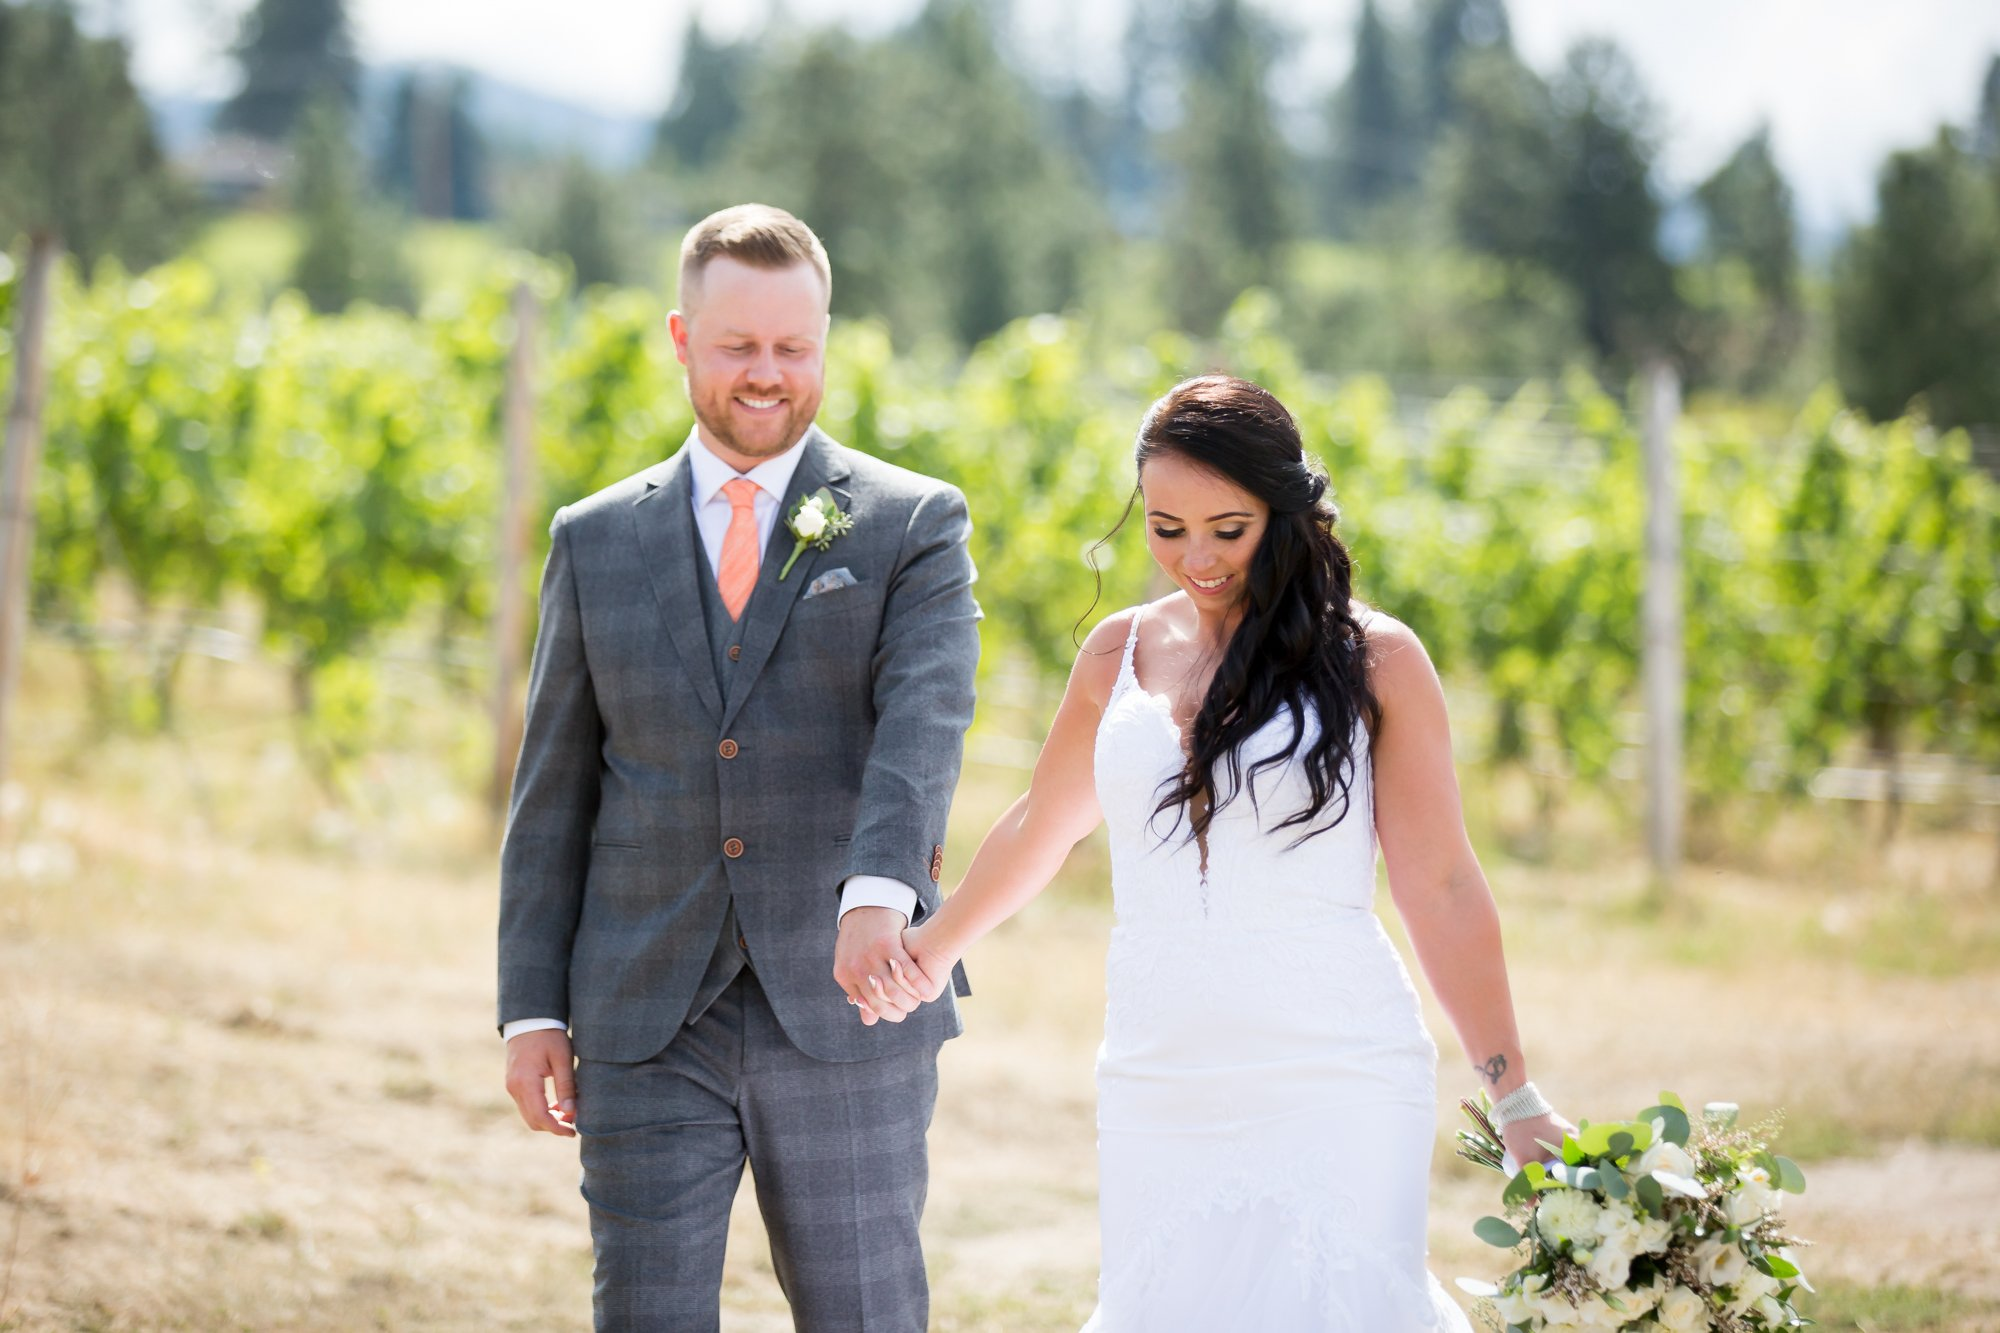 A couple holding hands in a vineyard